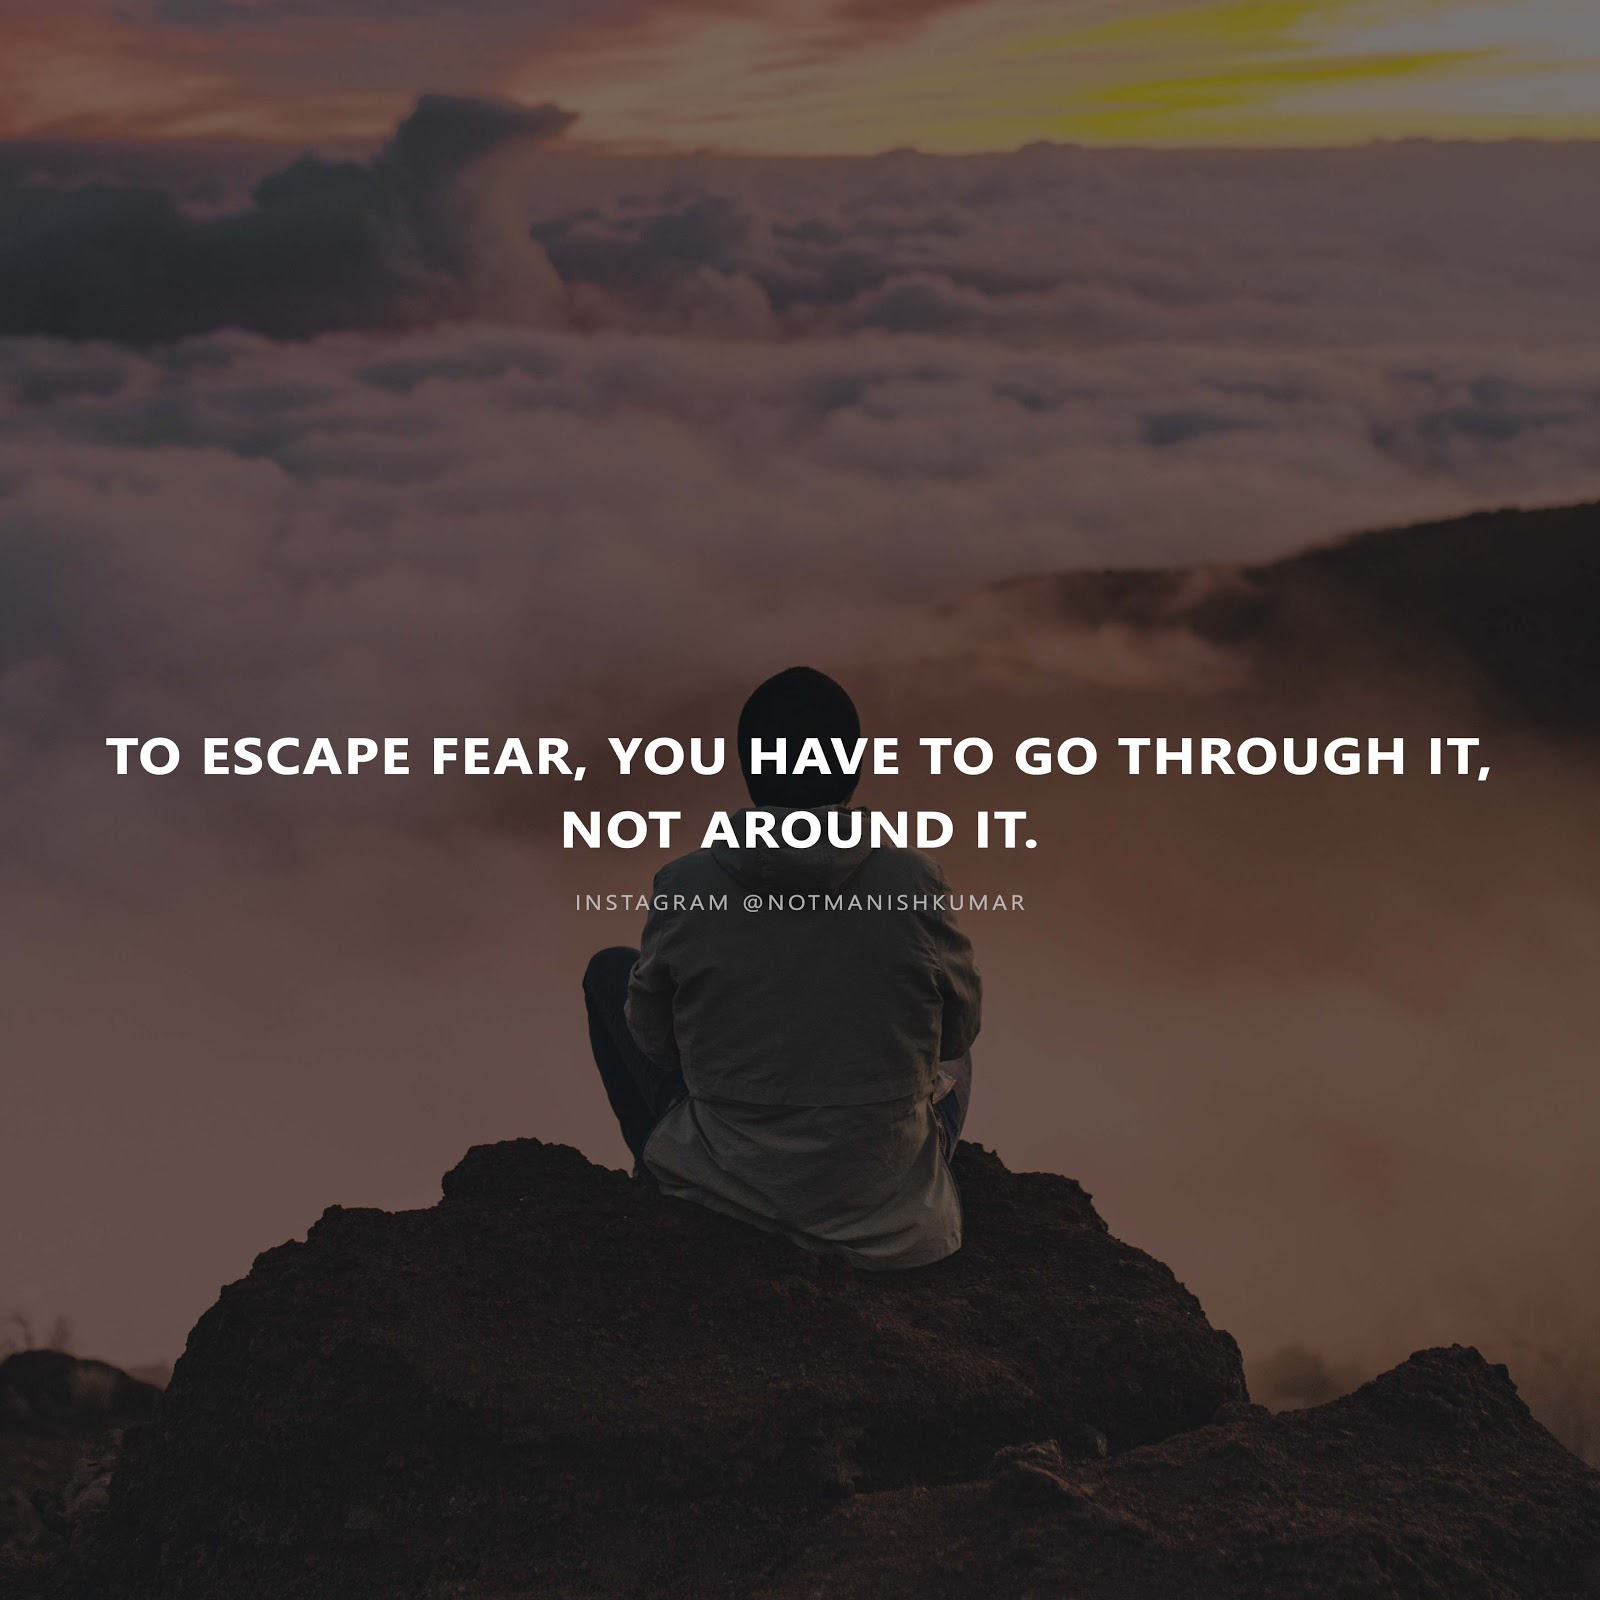 escaping-fear-quote